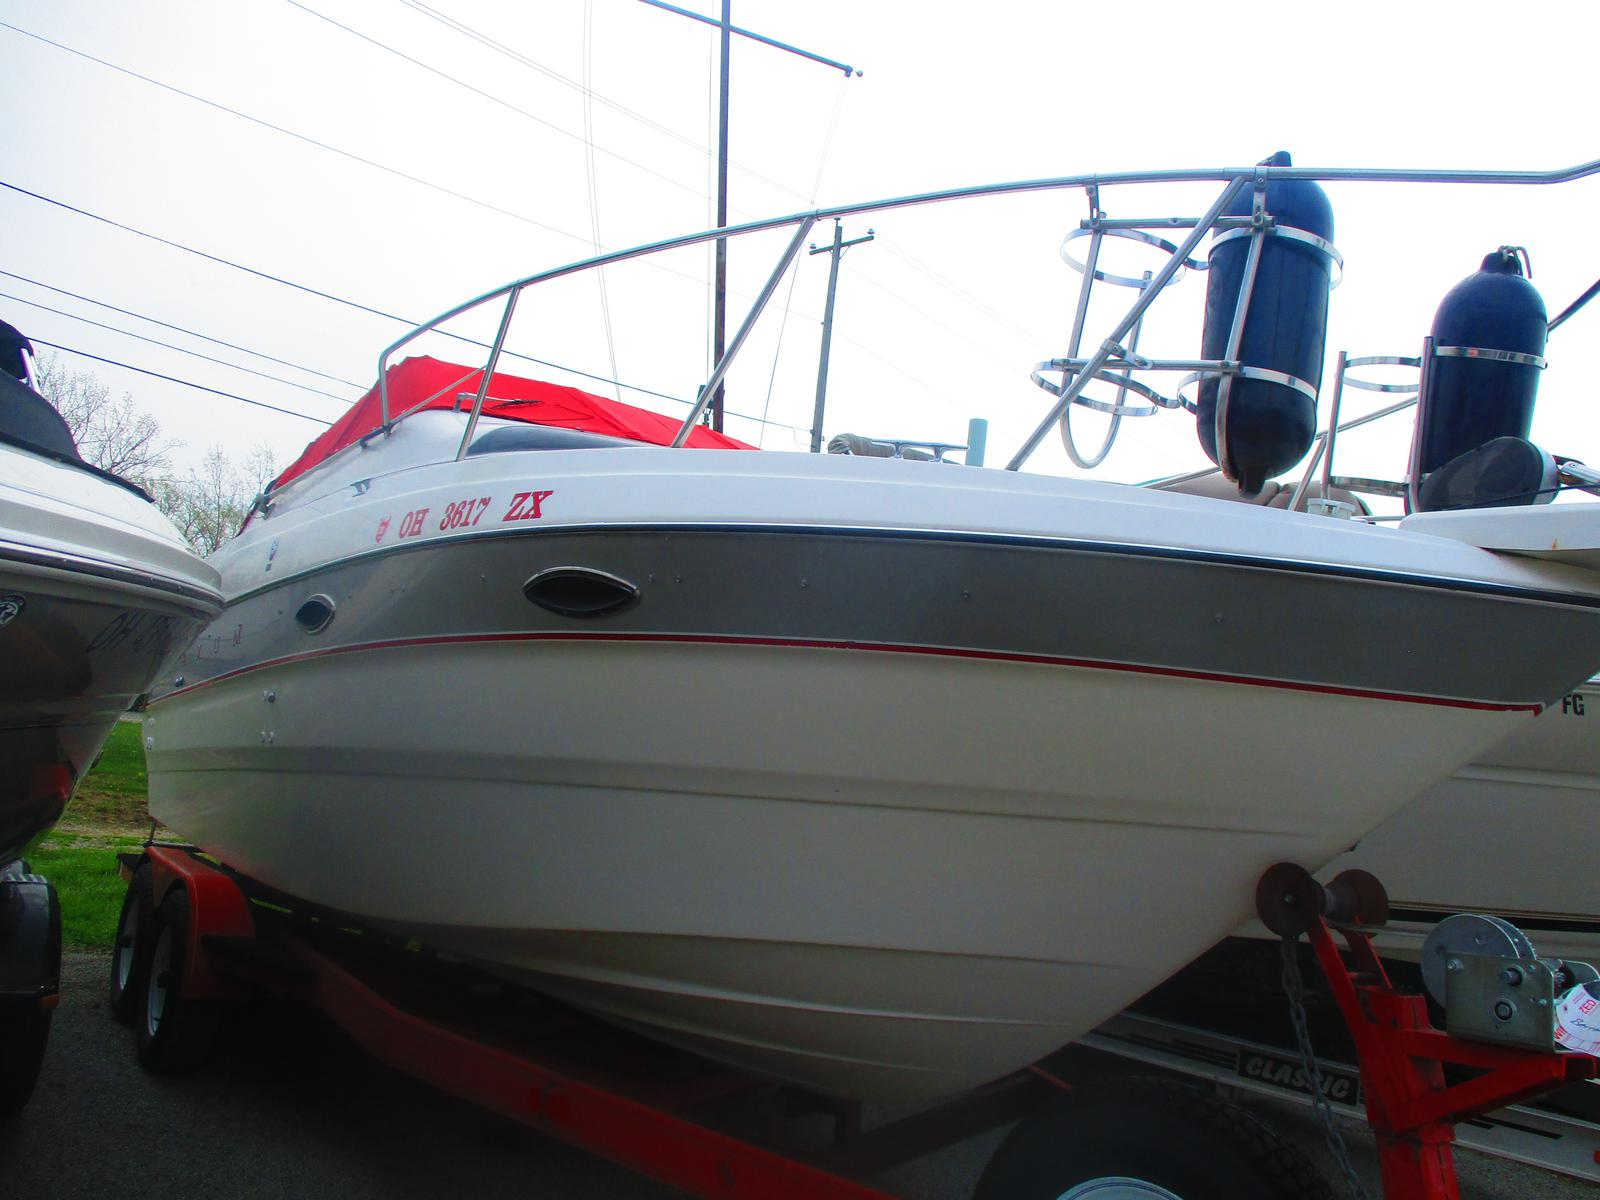 1993 Maxum boat for sale, model of the boat is 2300 SCR & Image # 1 of 7